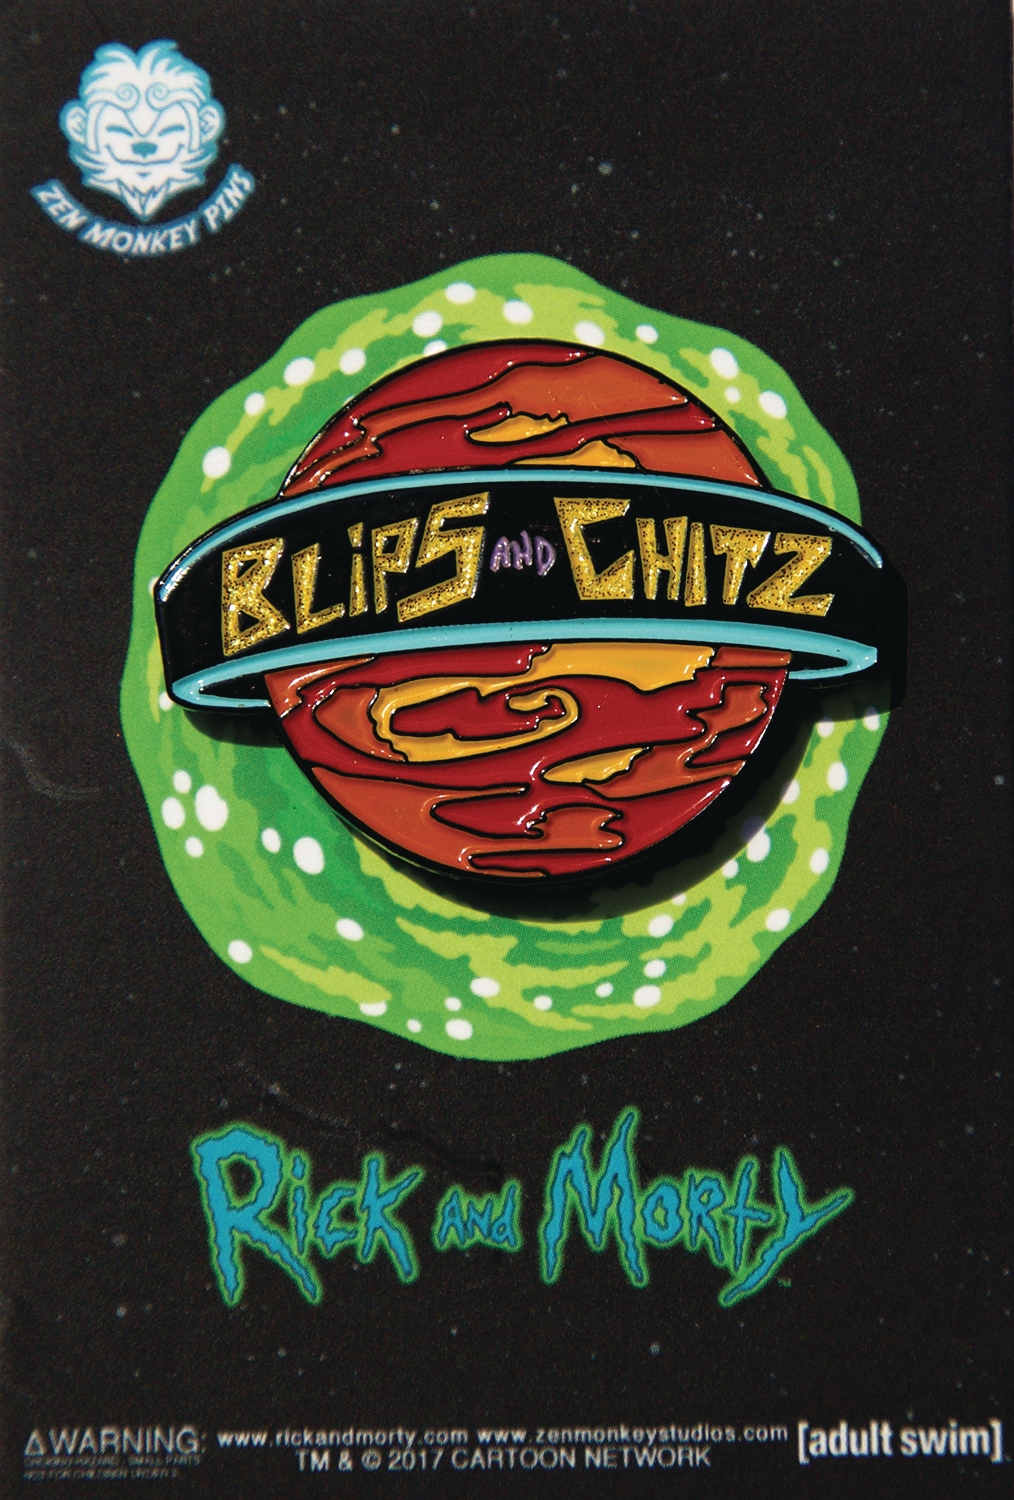 Rick and Morty: Blips and Chitz Lapel Pin